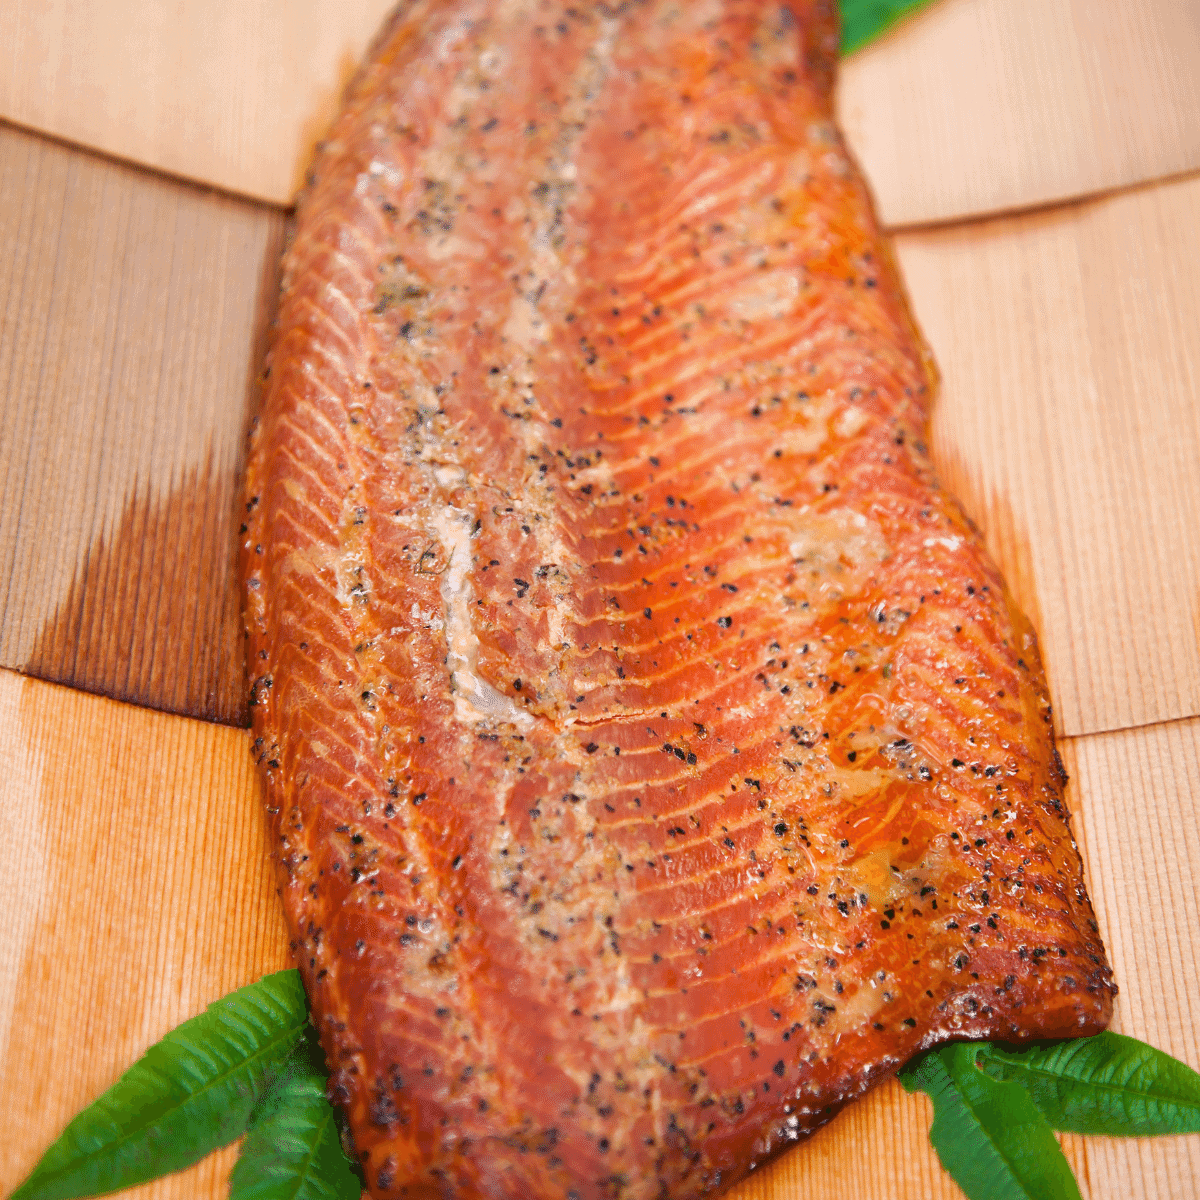 Cooked salmon just taken off the pellet grill